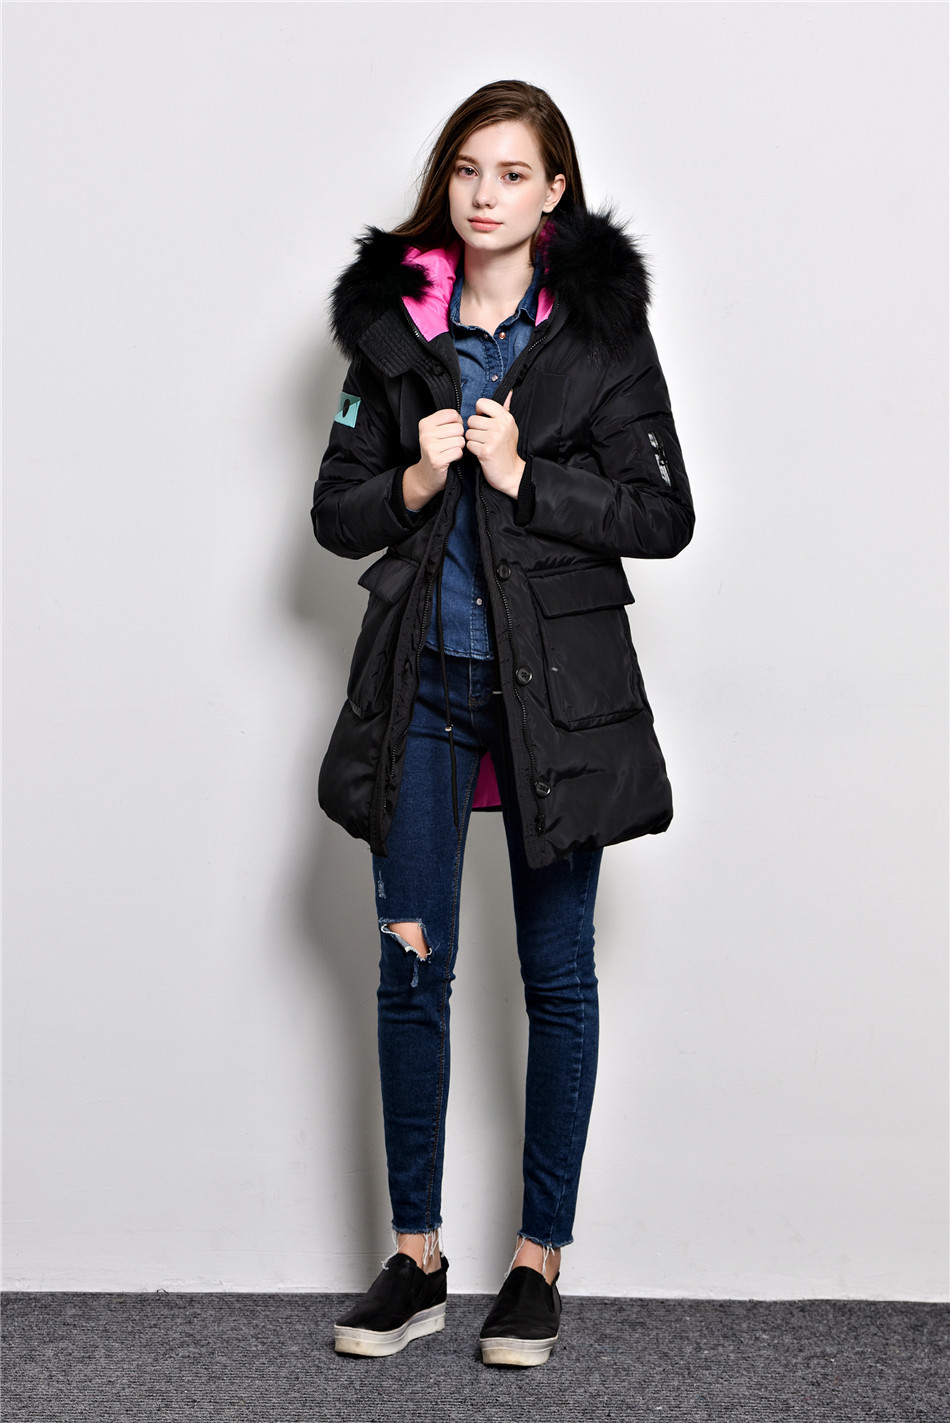 Aliexpress.com : Buy New 2015 Fashion Parkas Winter Female Down ...